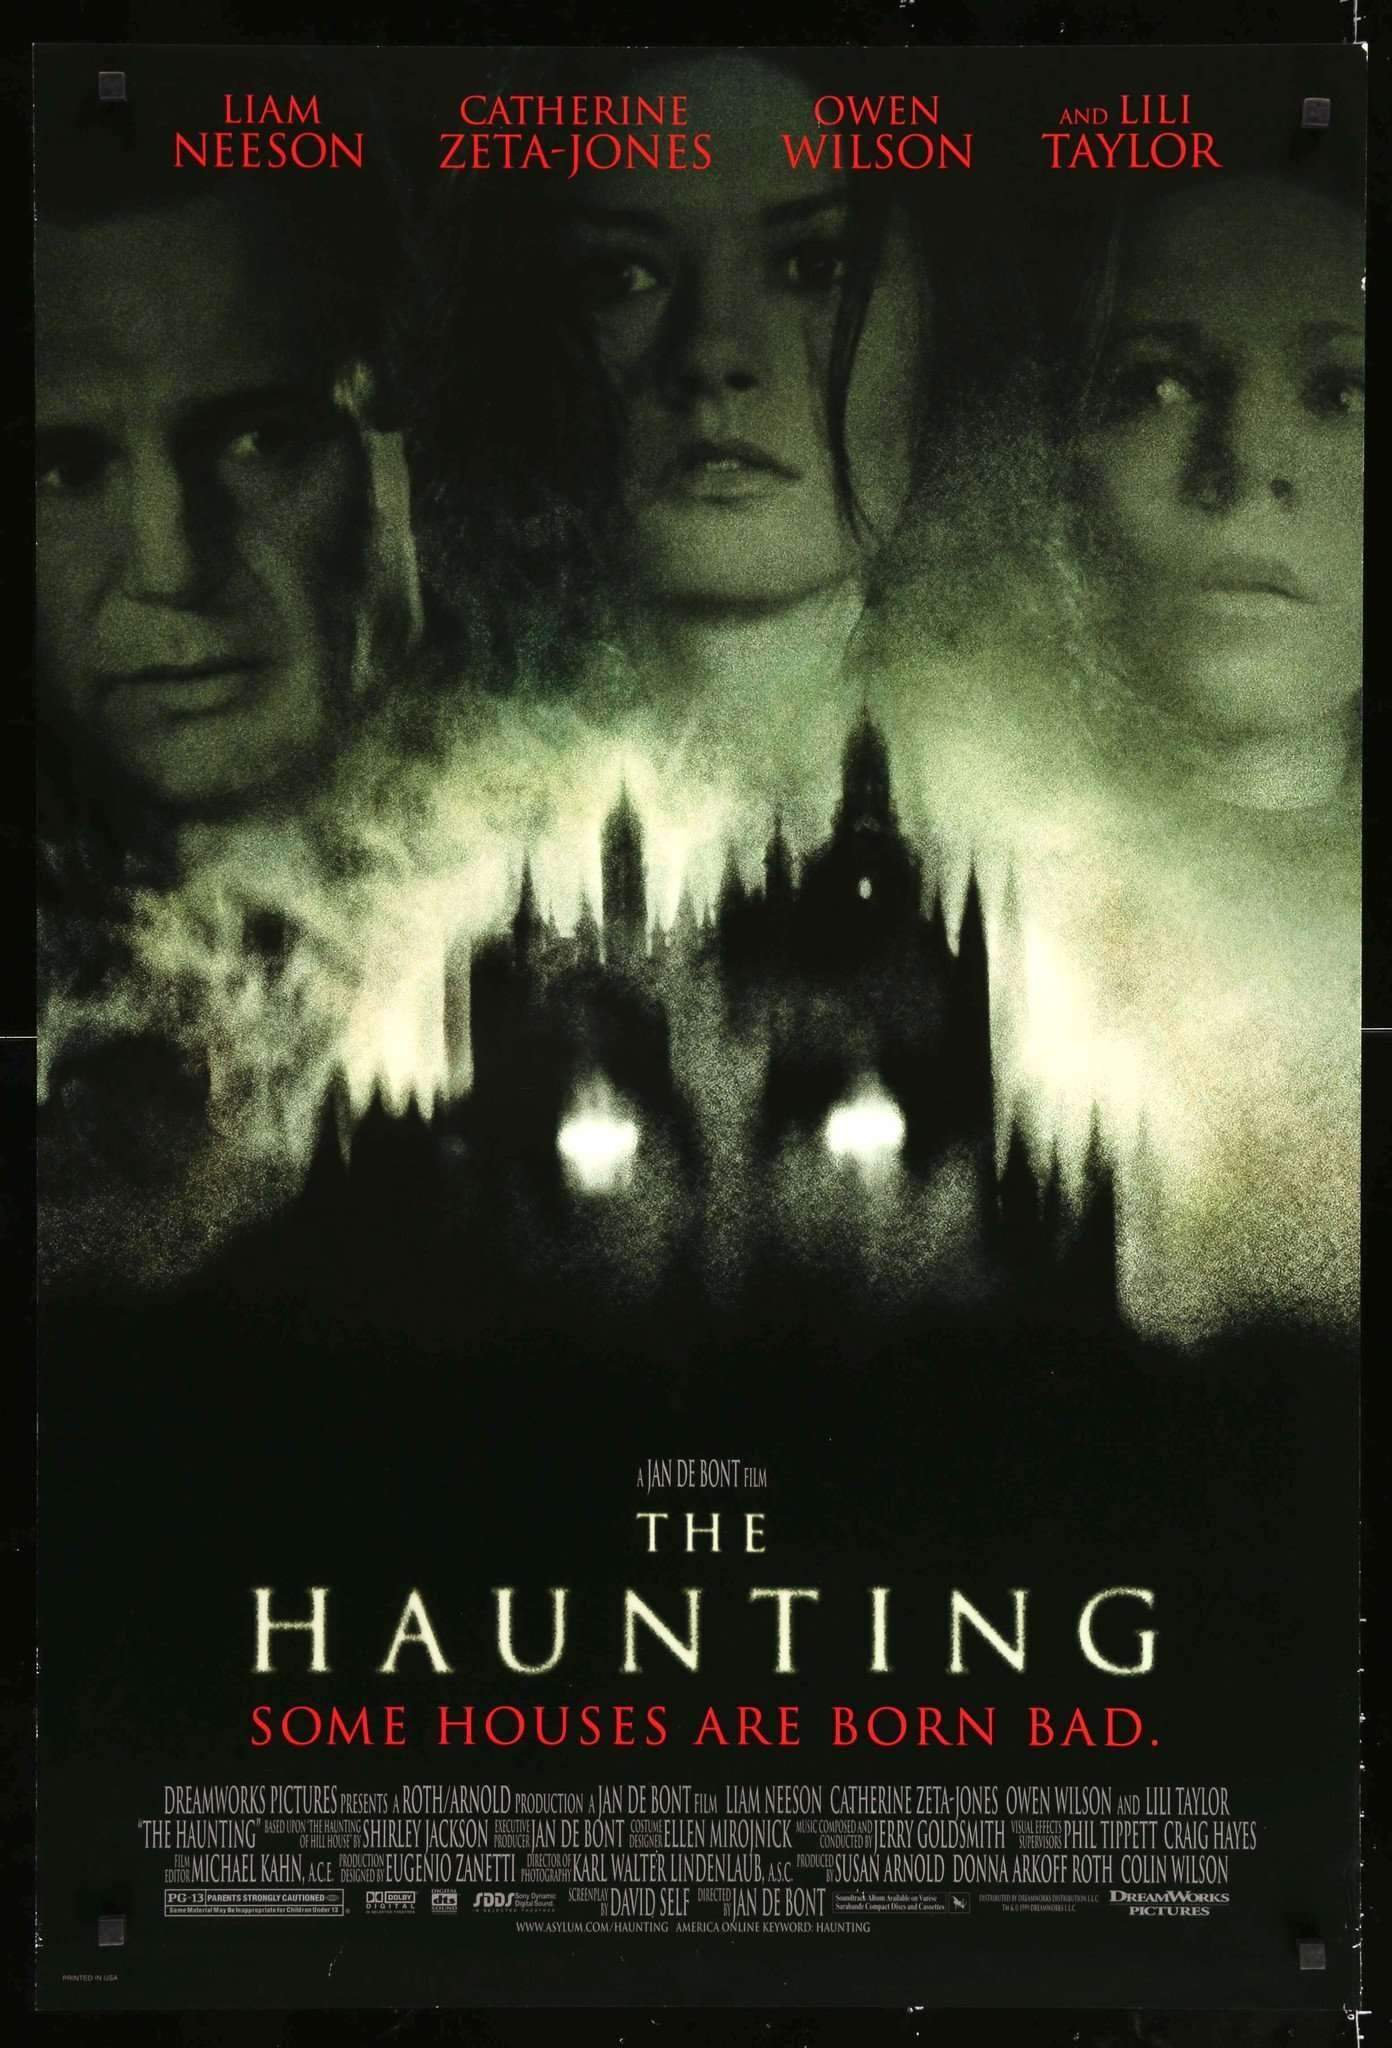 The Haunting.